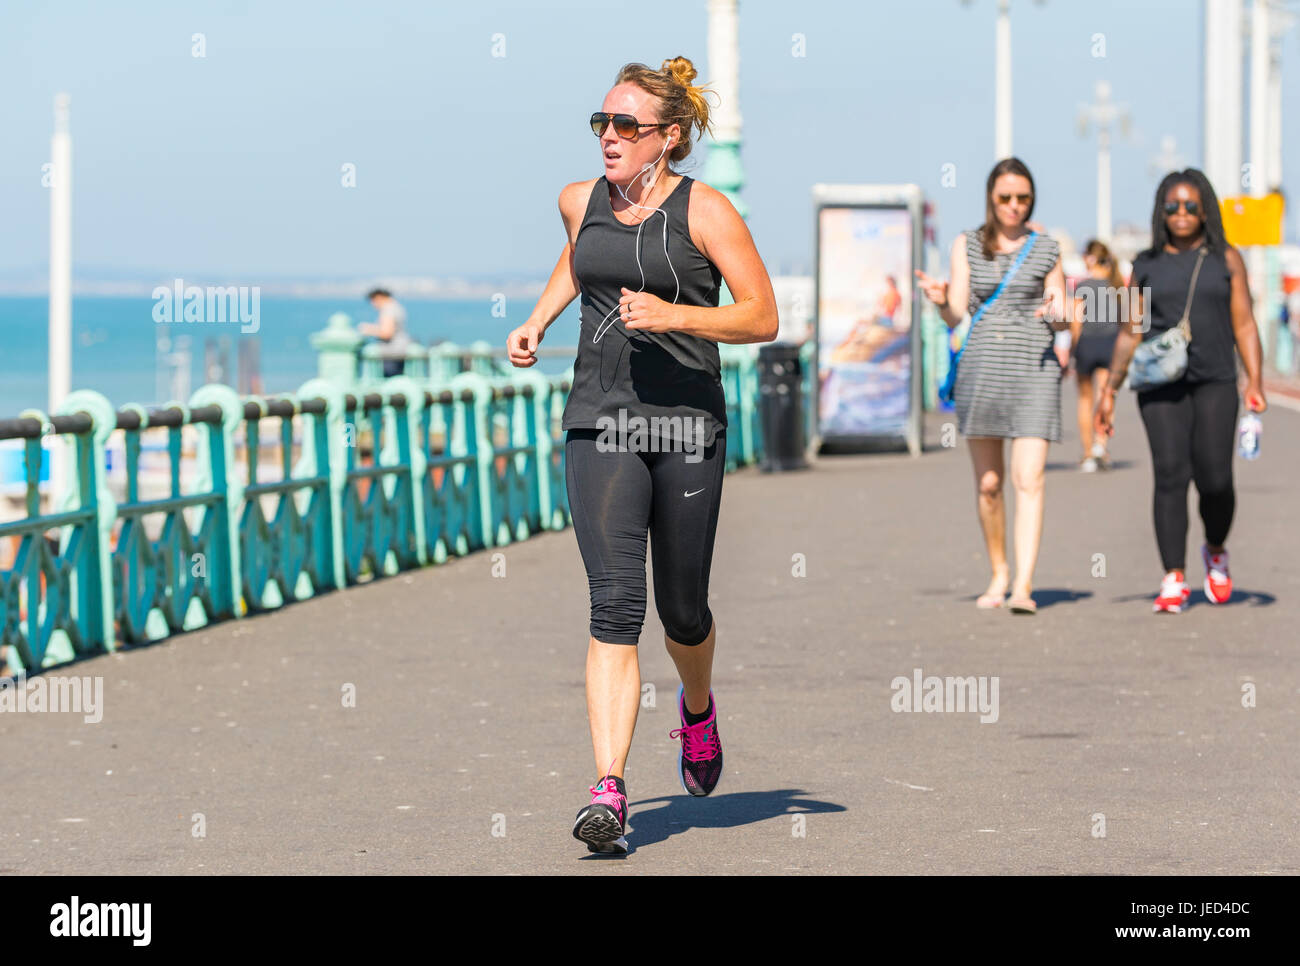 Young woman jogging along the seafront promenade on a hot day in Summer. - Stock Image